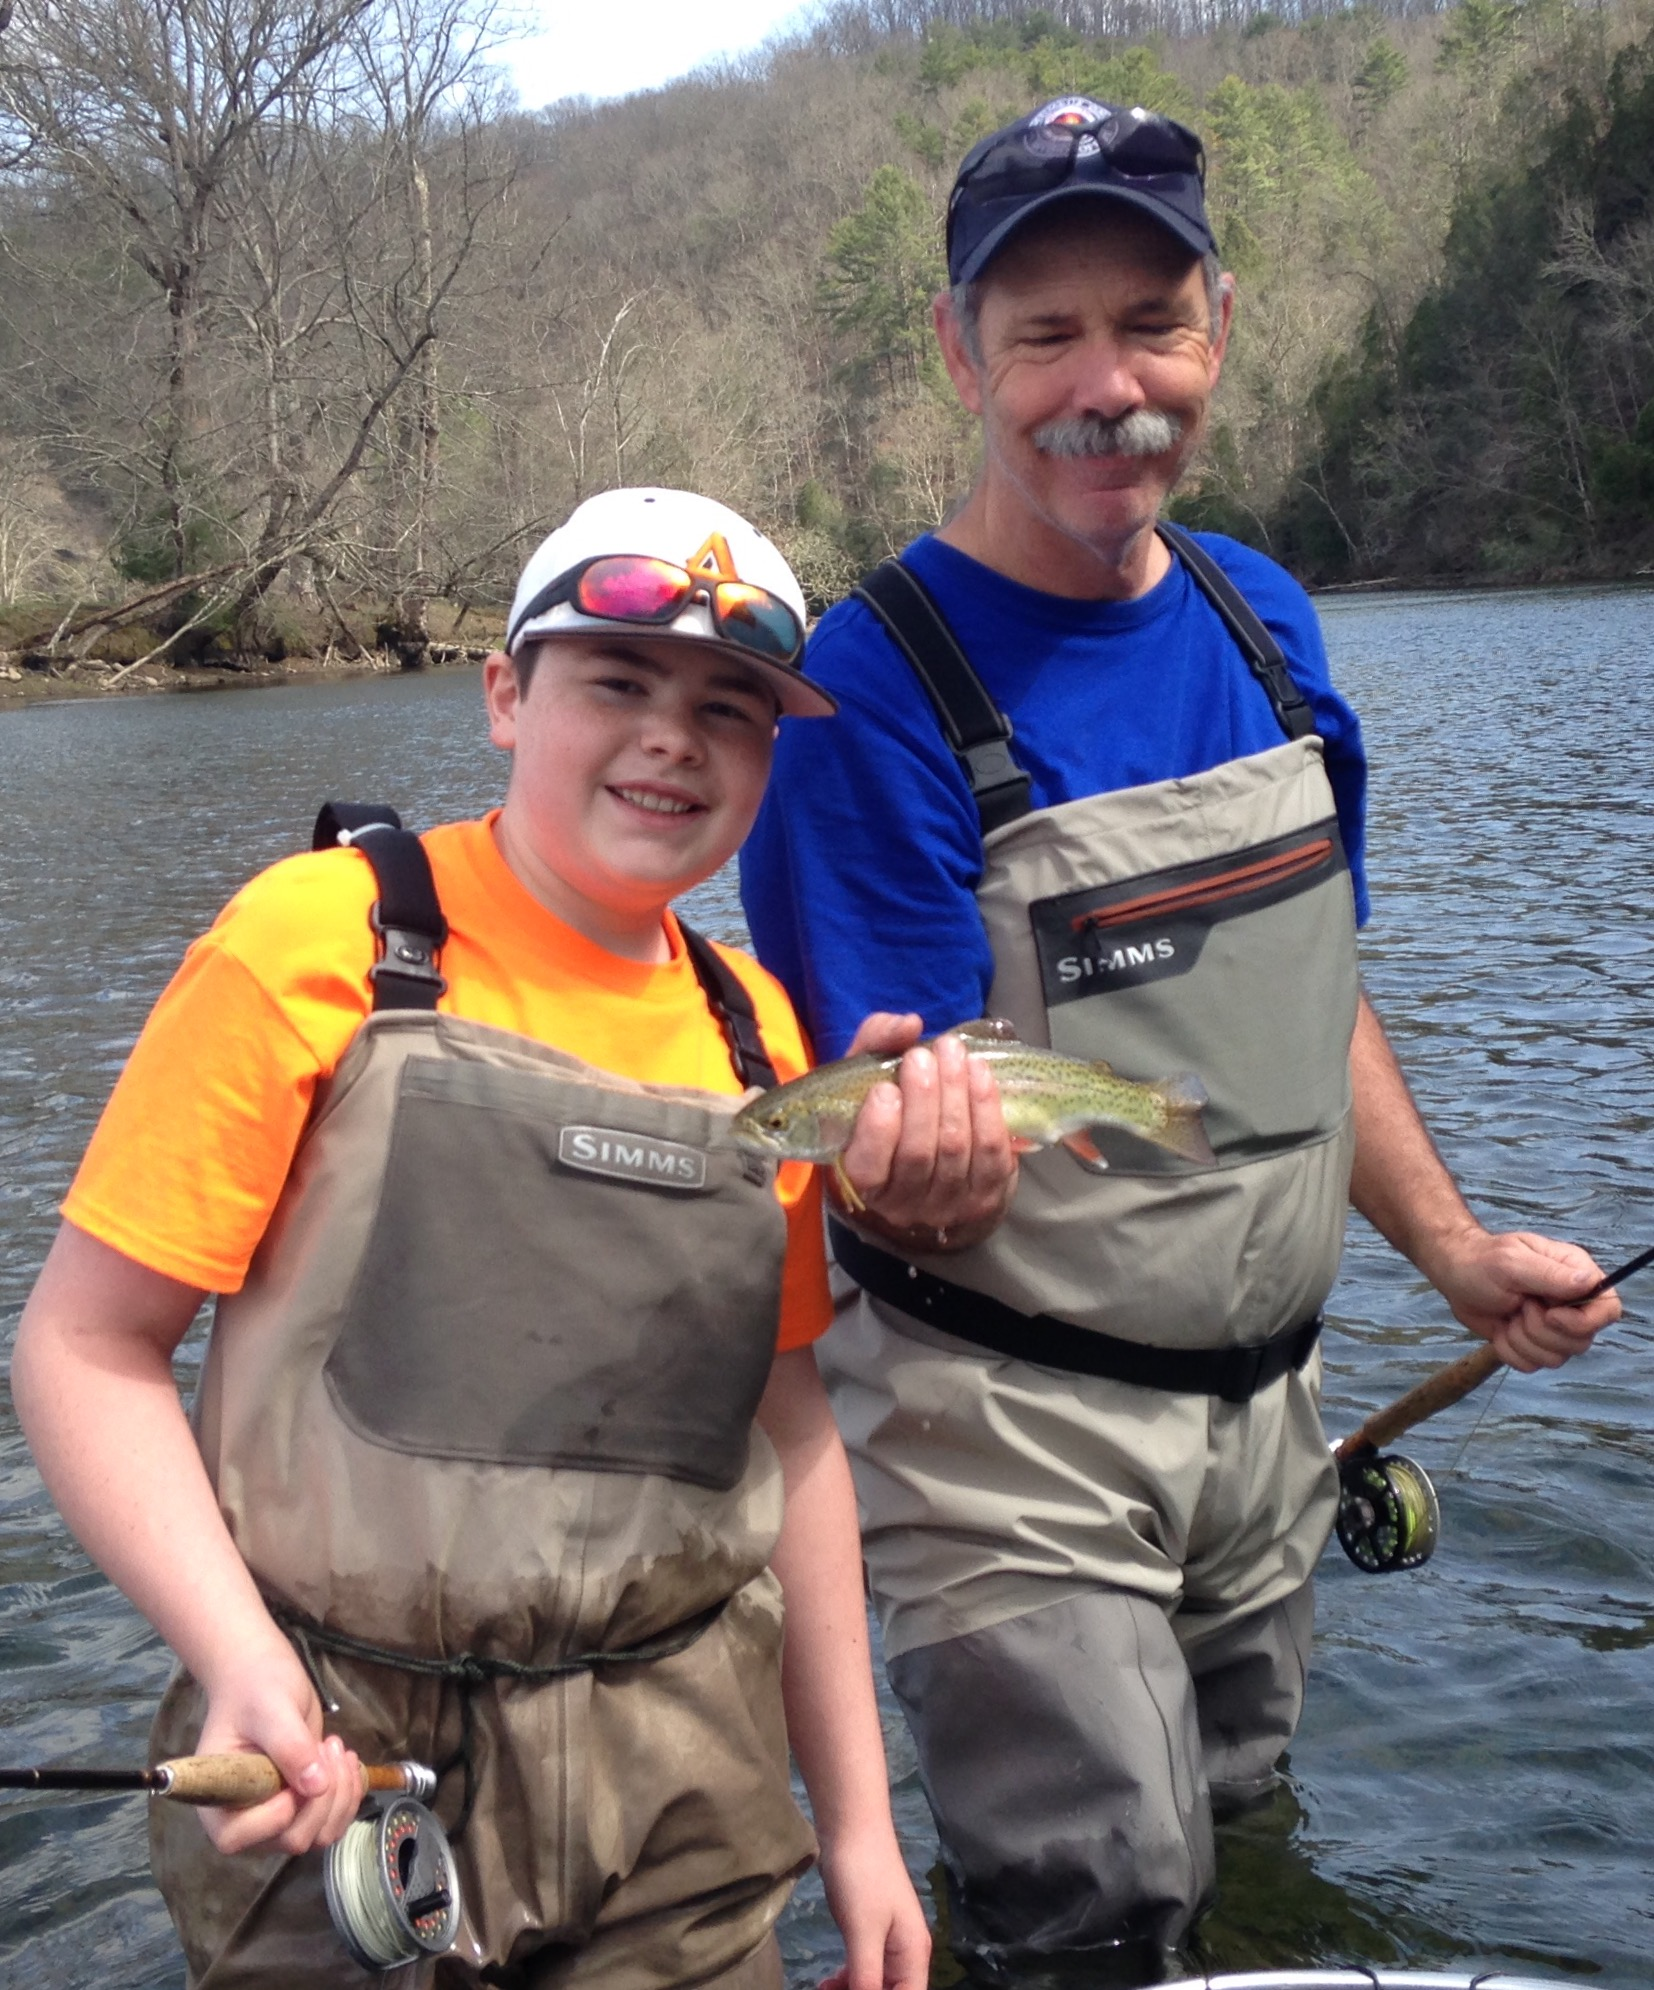 Fly fishing lesson on the South Holston river